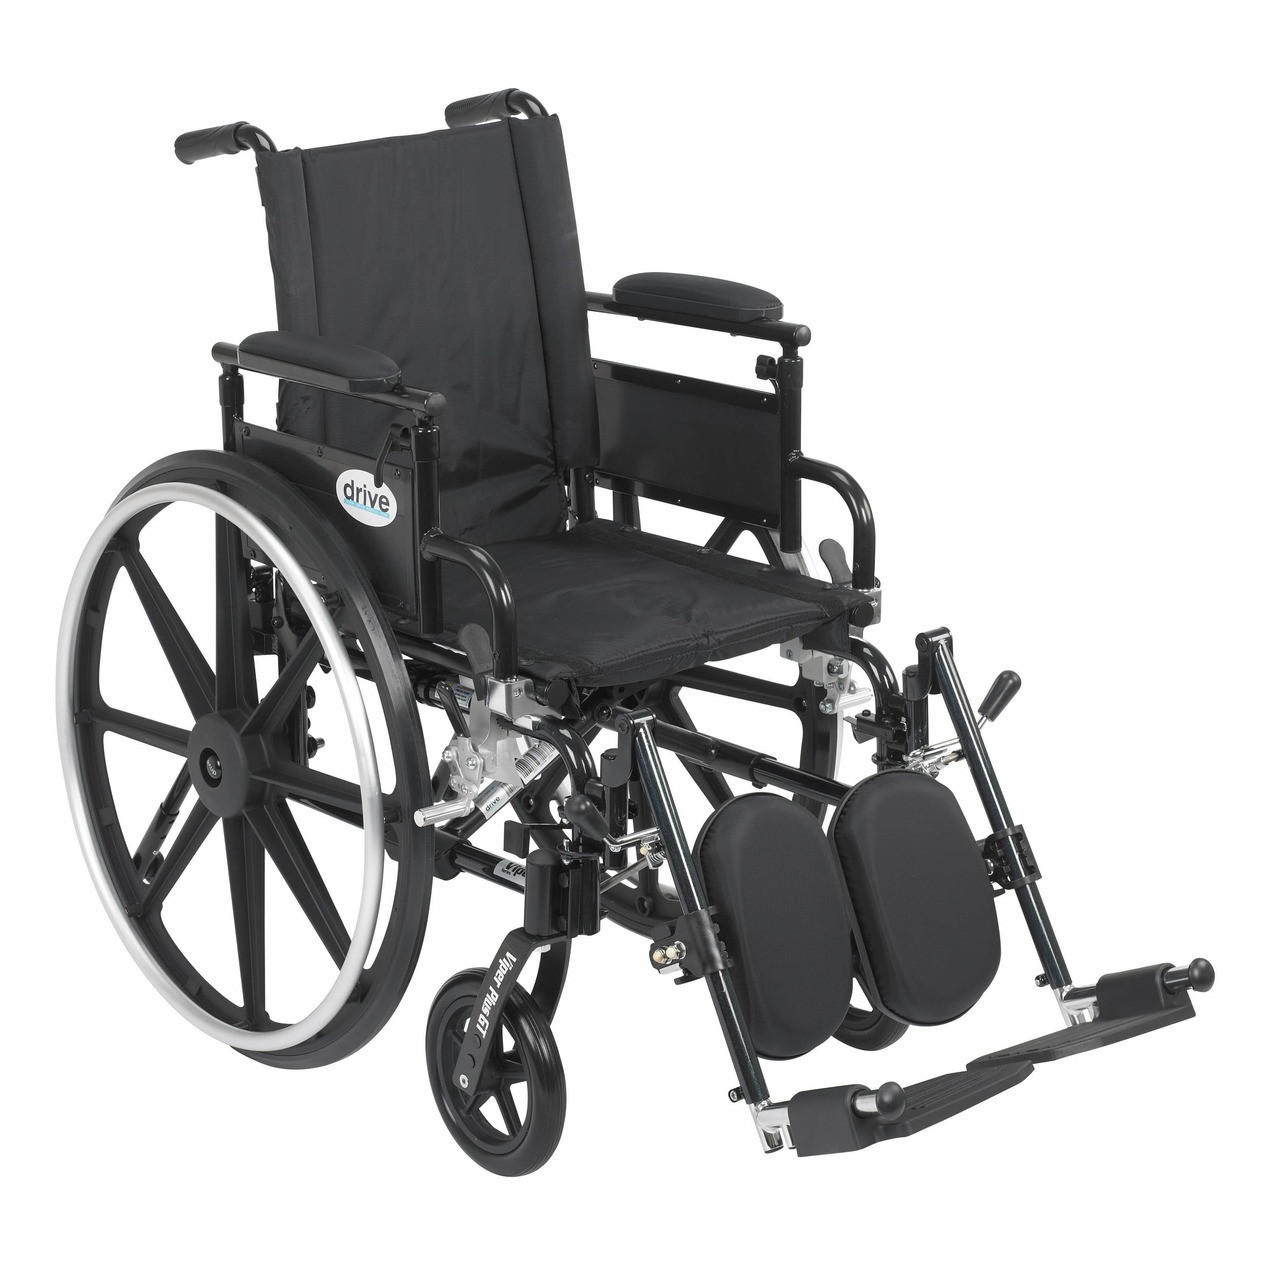 drive wheel chair heywood wakefield dining table and chairs medical viper plus gt wheelchair baron supplies